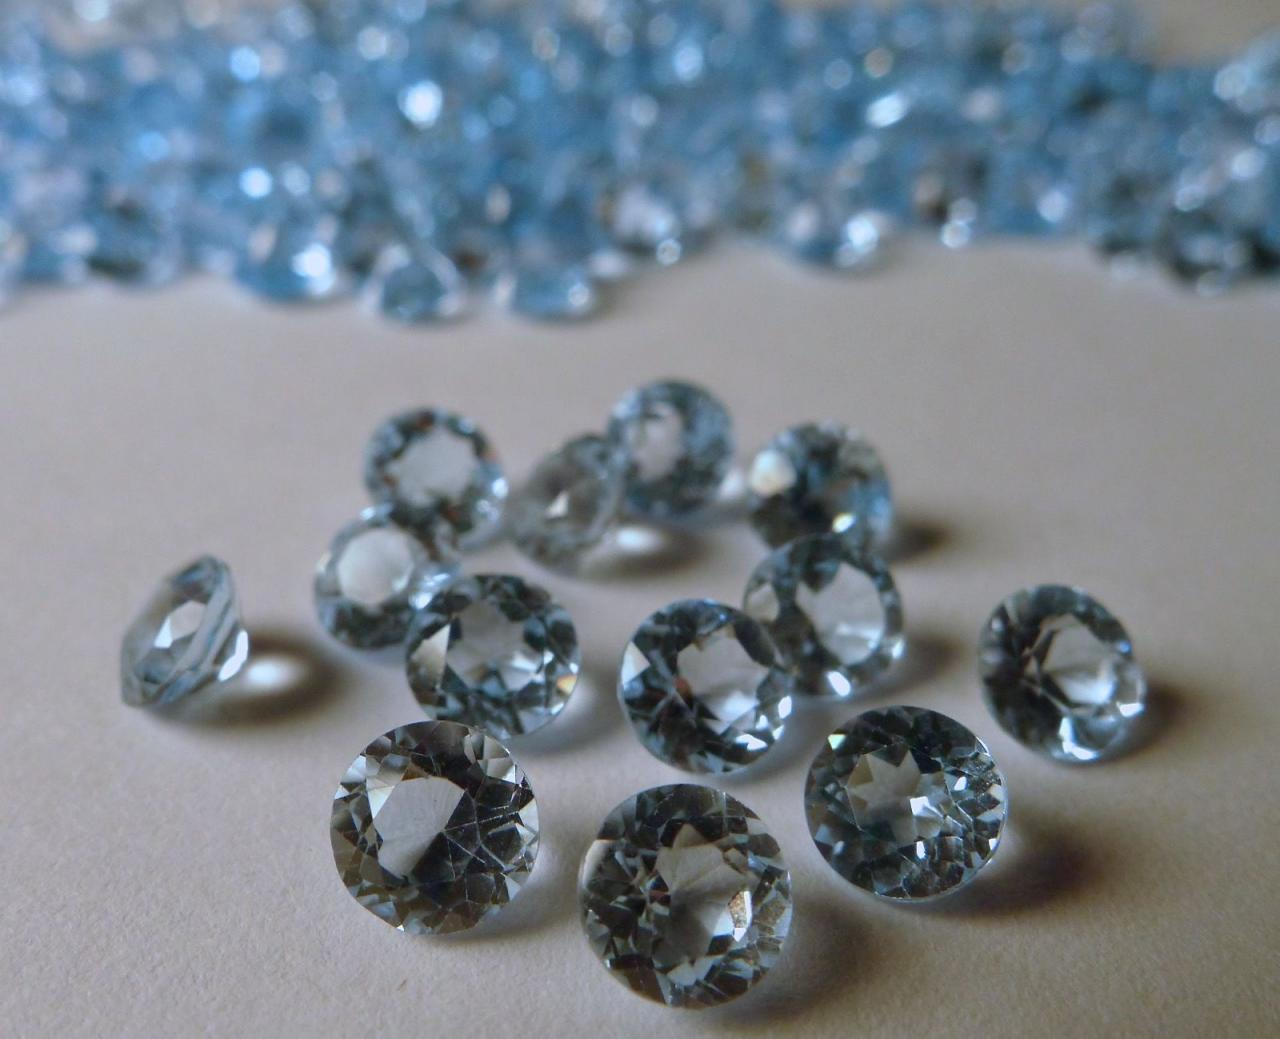 Natural Sky Blue Topaz 4mm 100 Pieces Lot Faceted Cut Round Blue Color - Natural Loose Gemstone